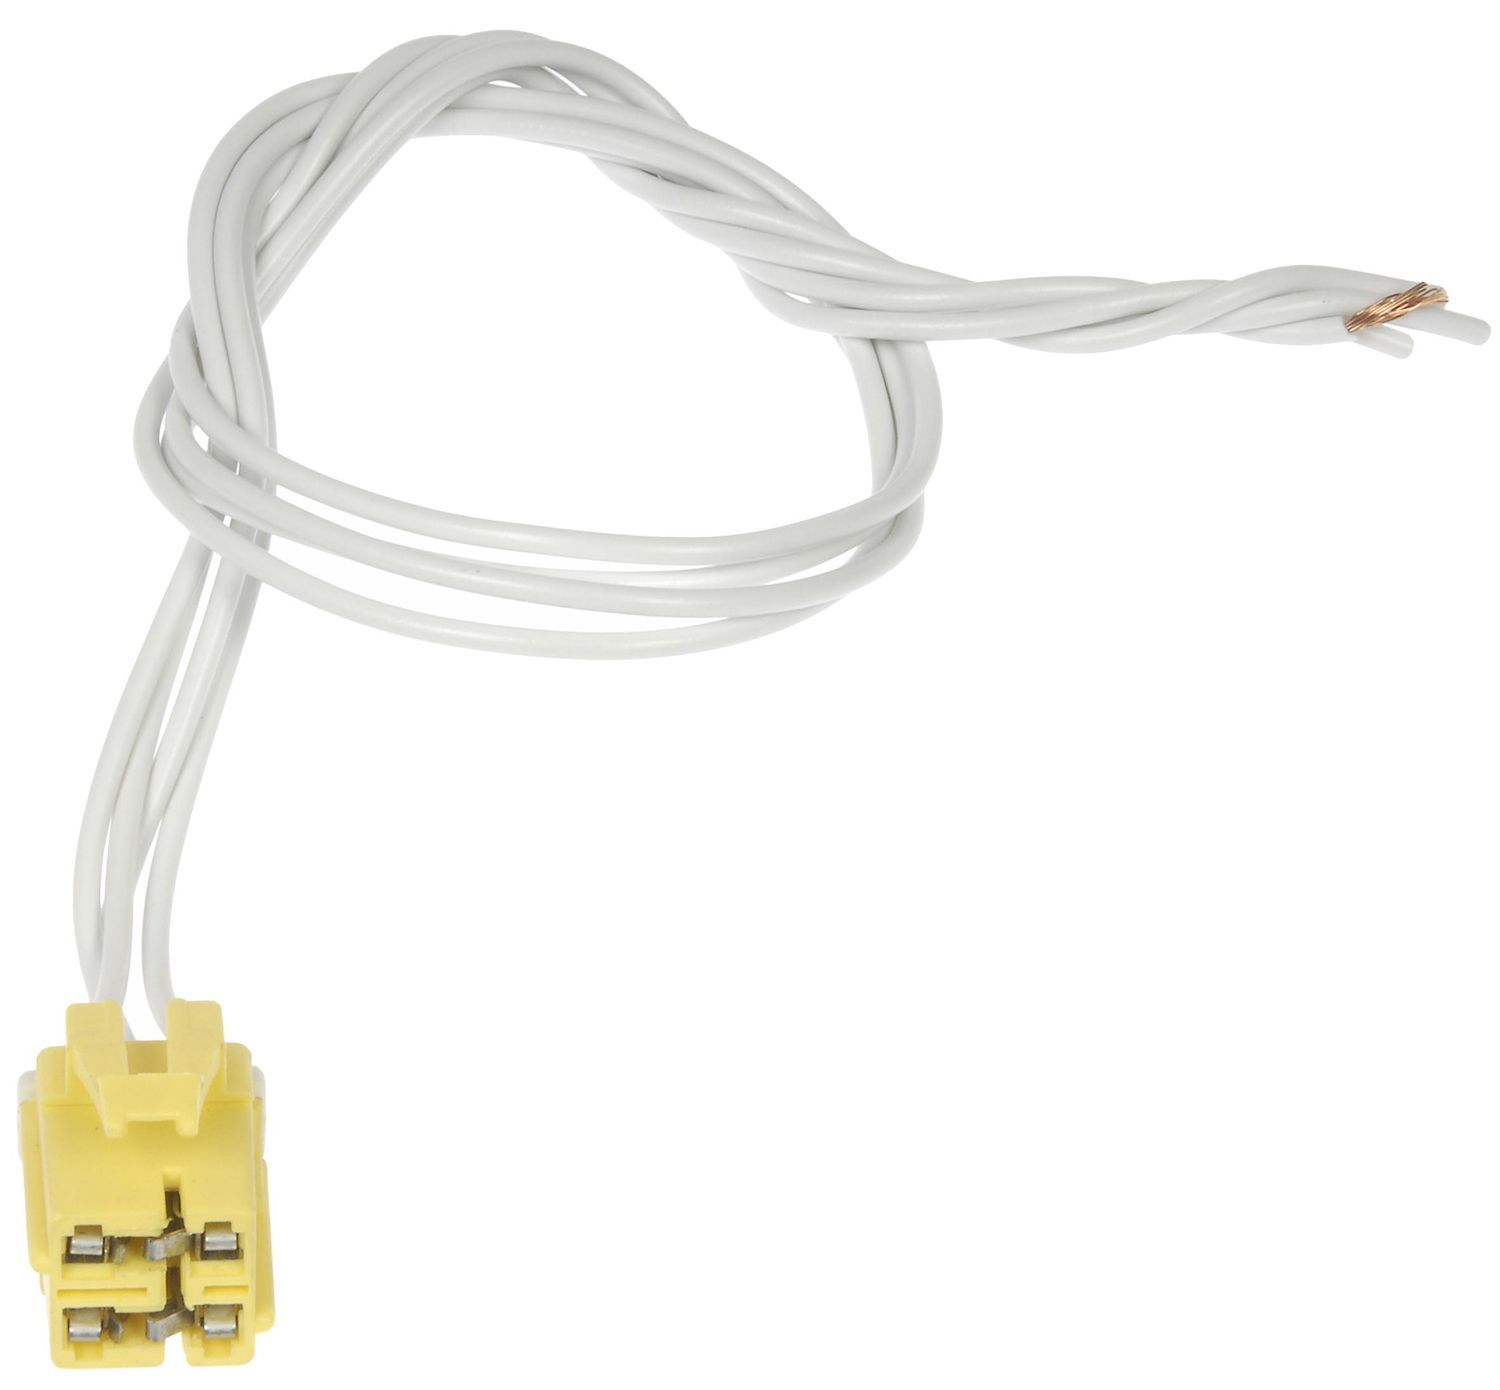 Chevrolet Blazer Body Wiring Harness Connector Replacement Dorman 2004 N A 645 622 Yellow 4 Way Female W Leads